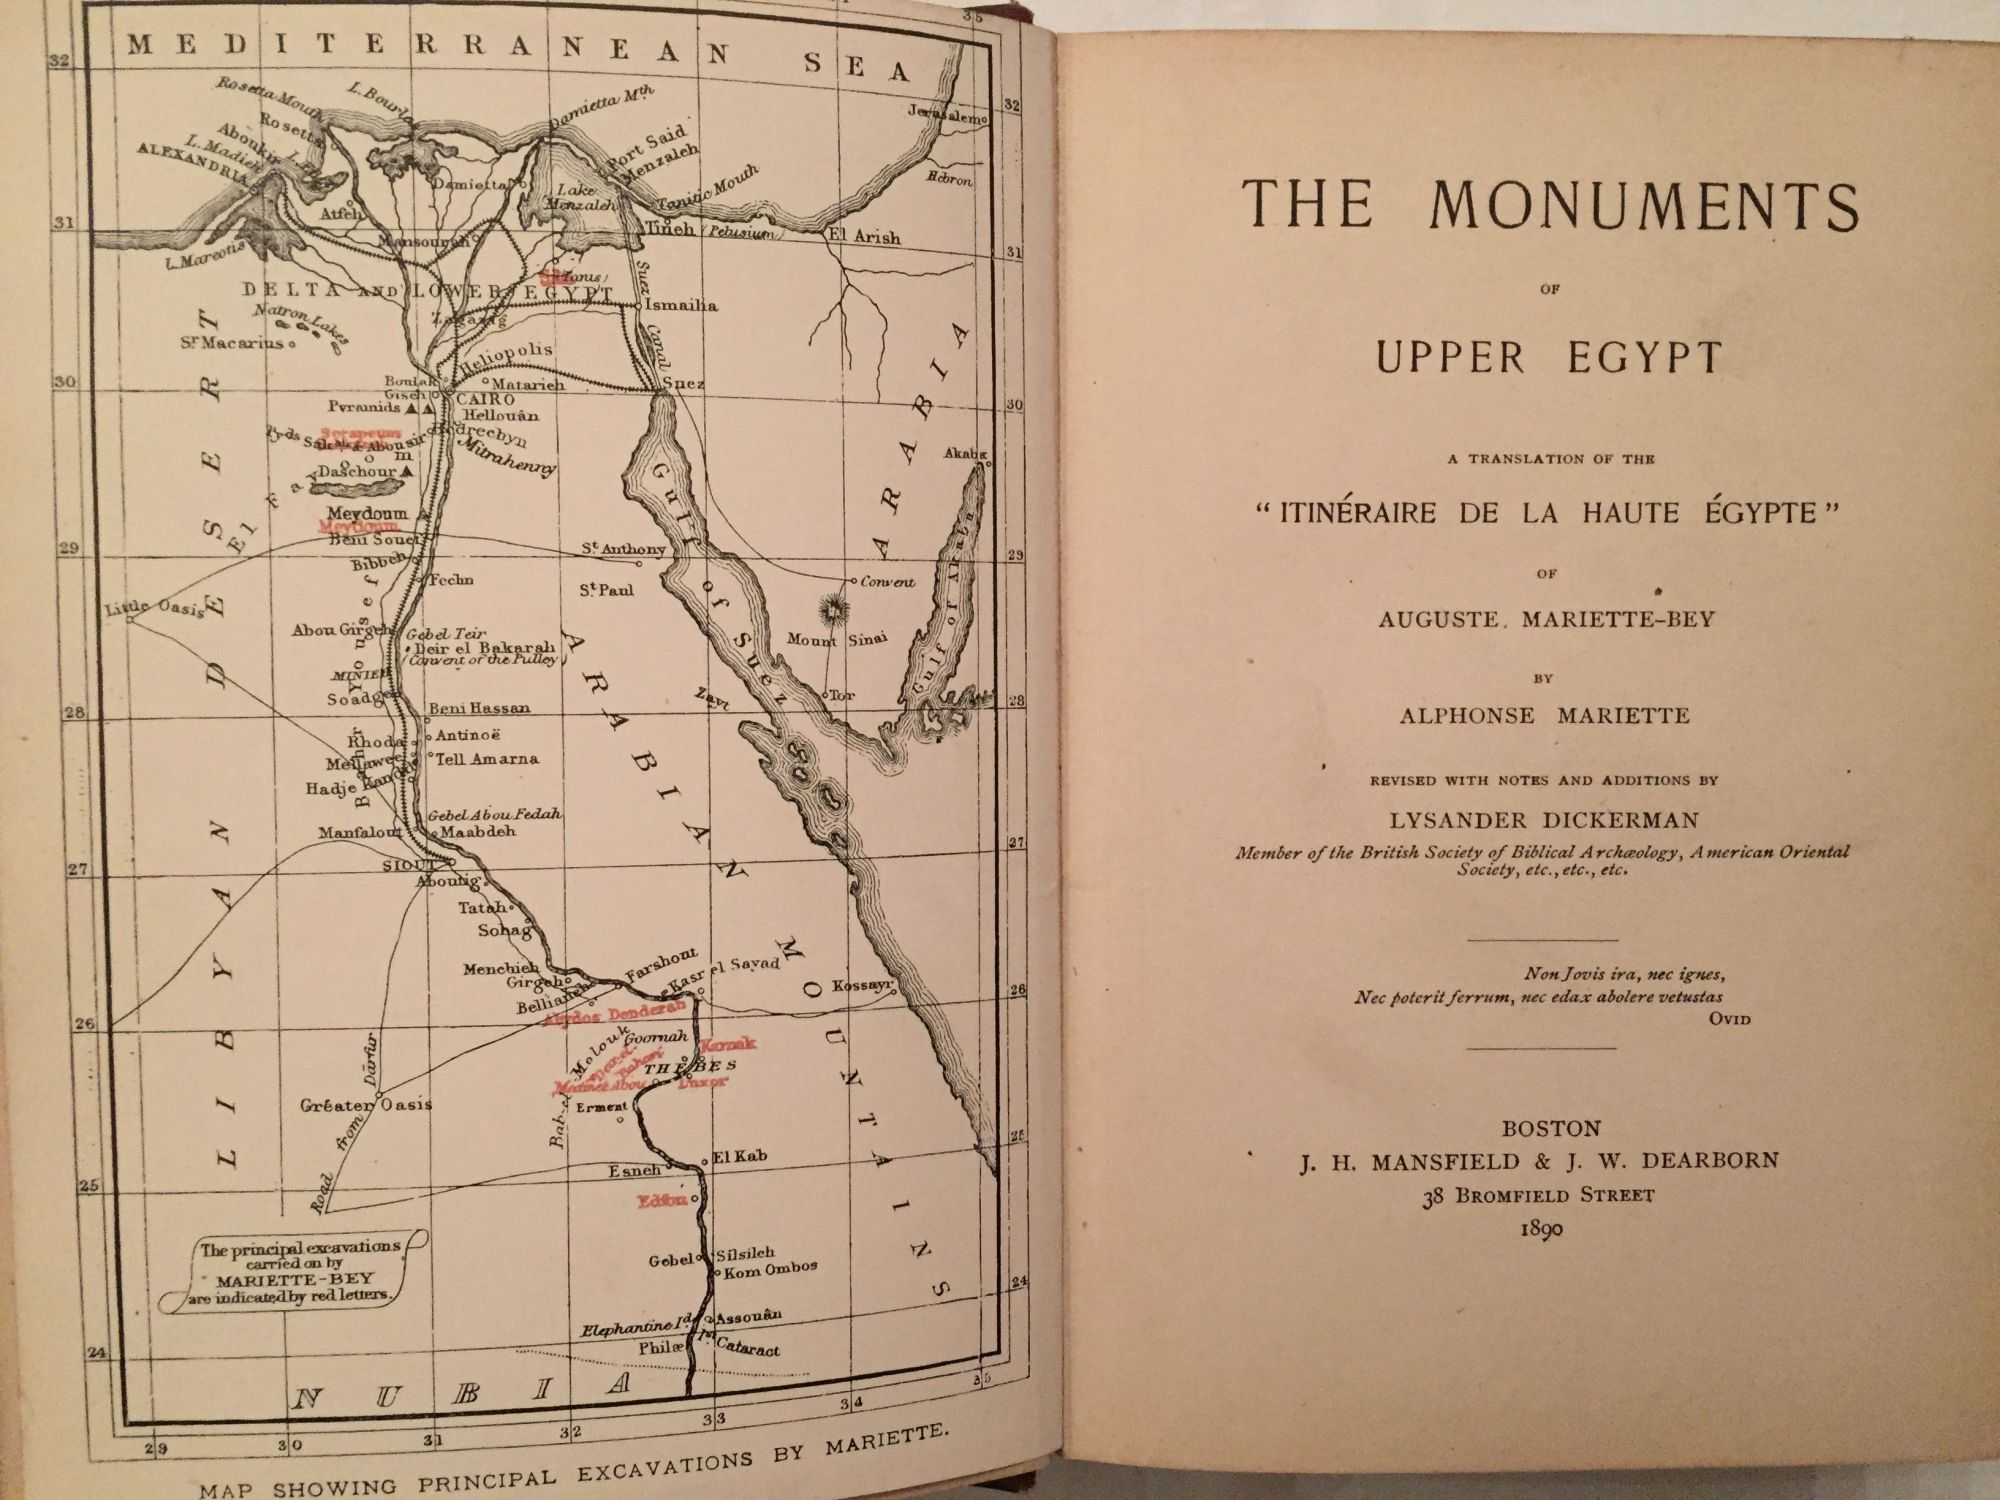 monuments of upper egypt english translation of